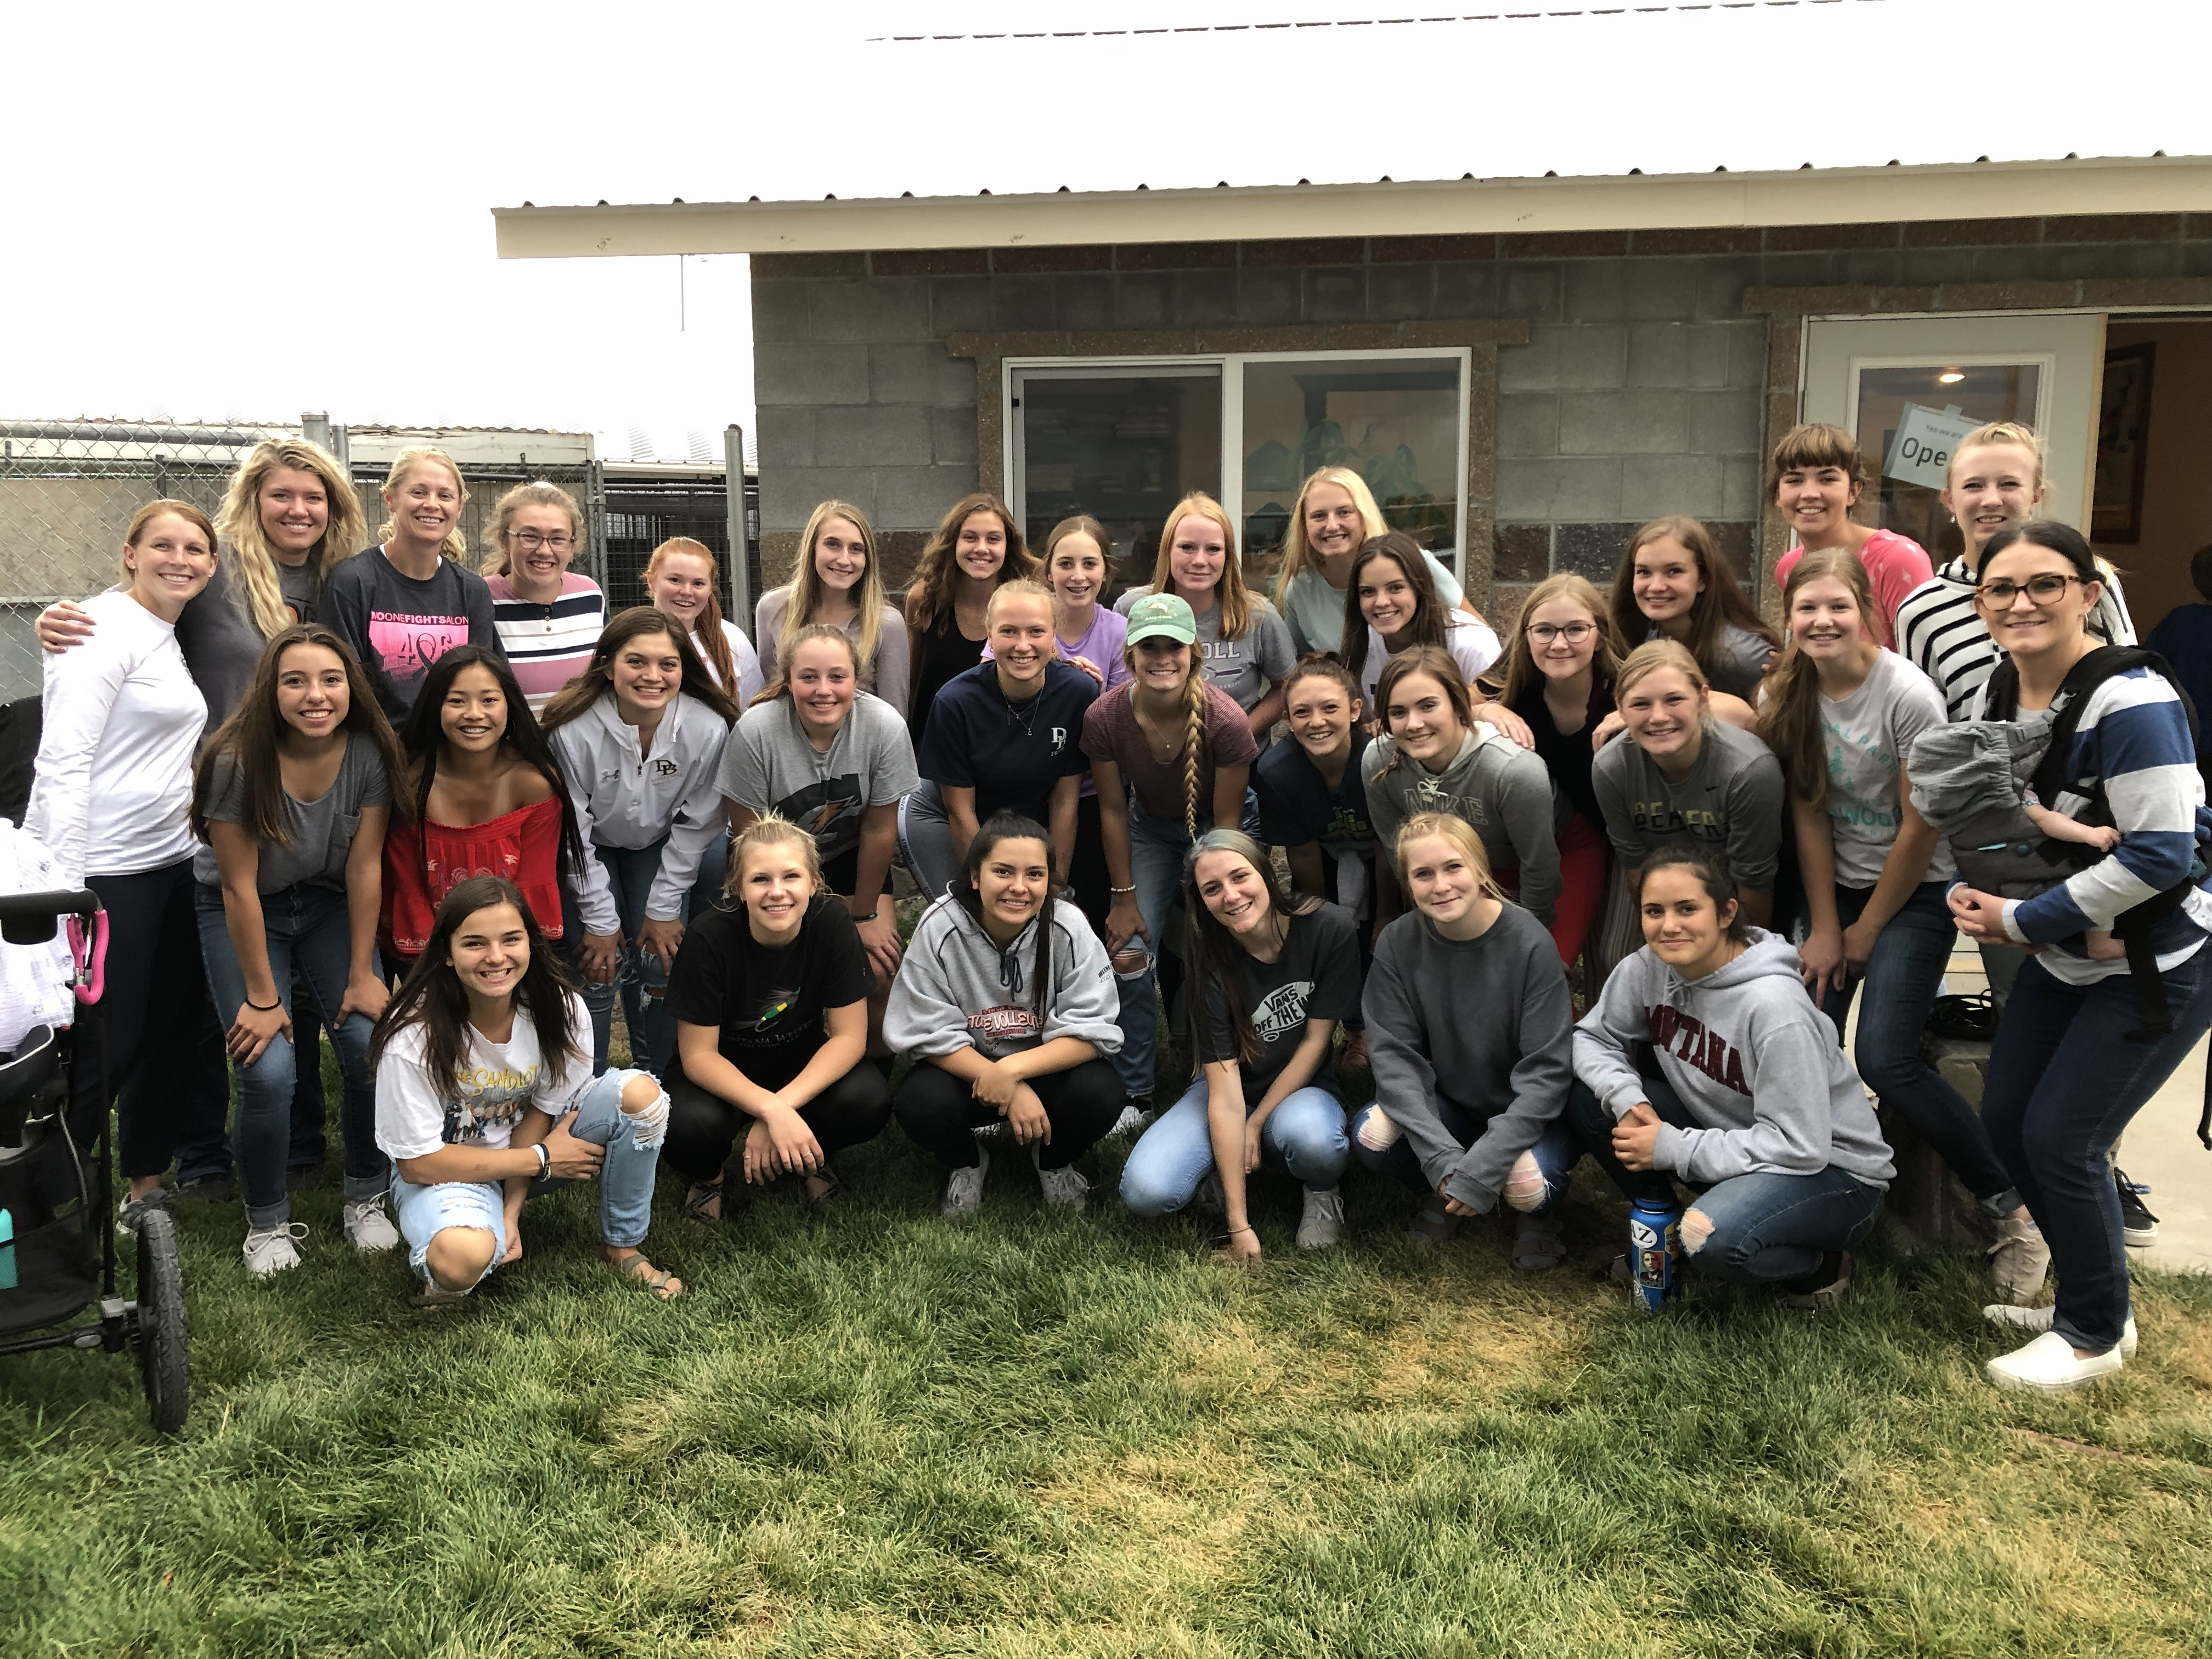 A photo of the volleyball team walking dogs at the local Humane Society in September 2019